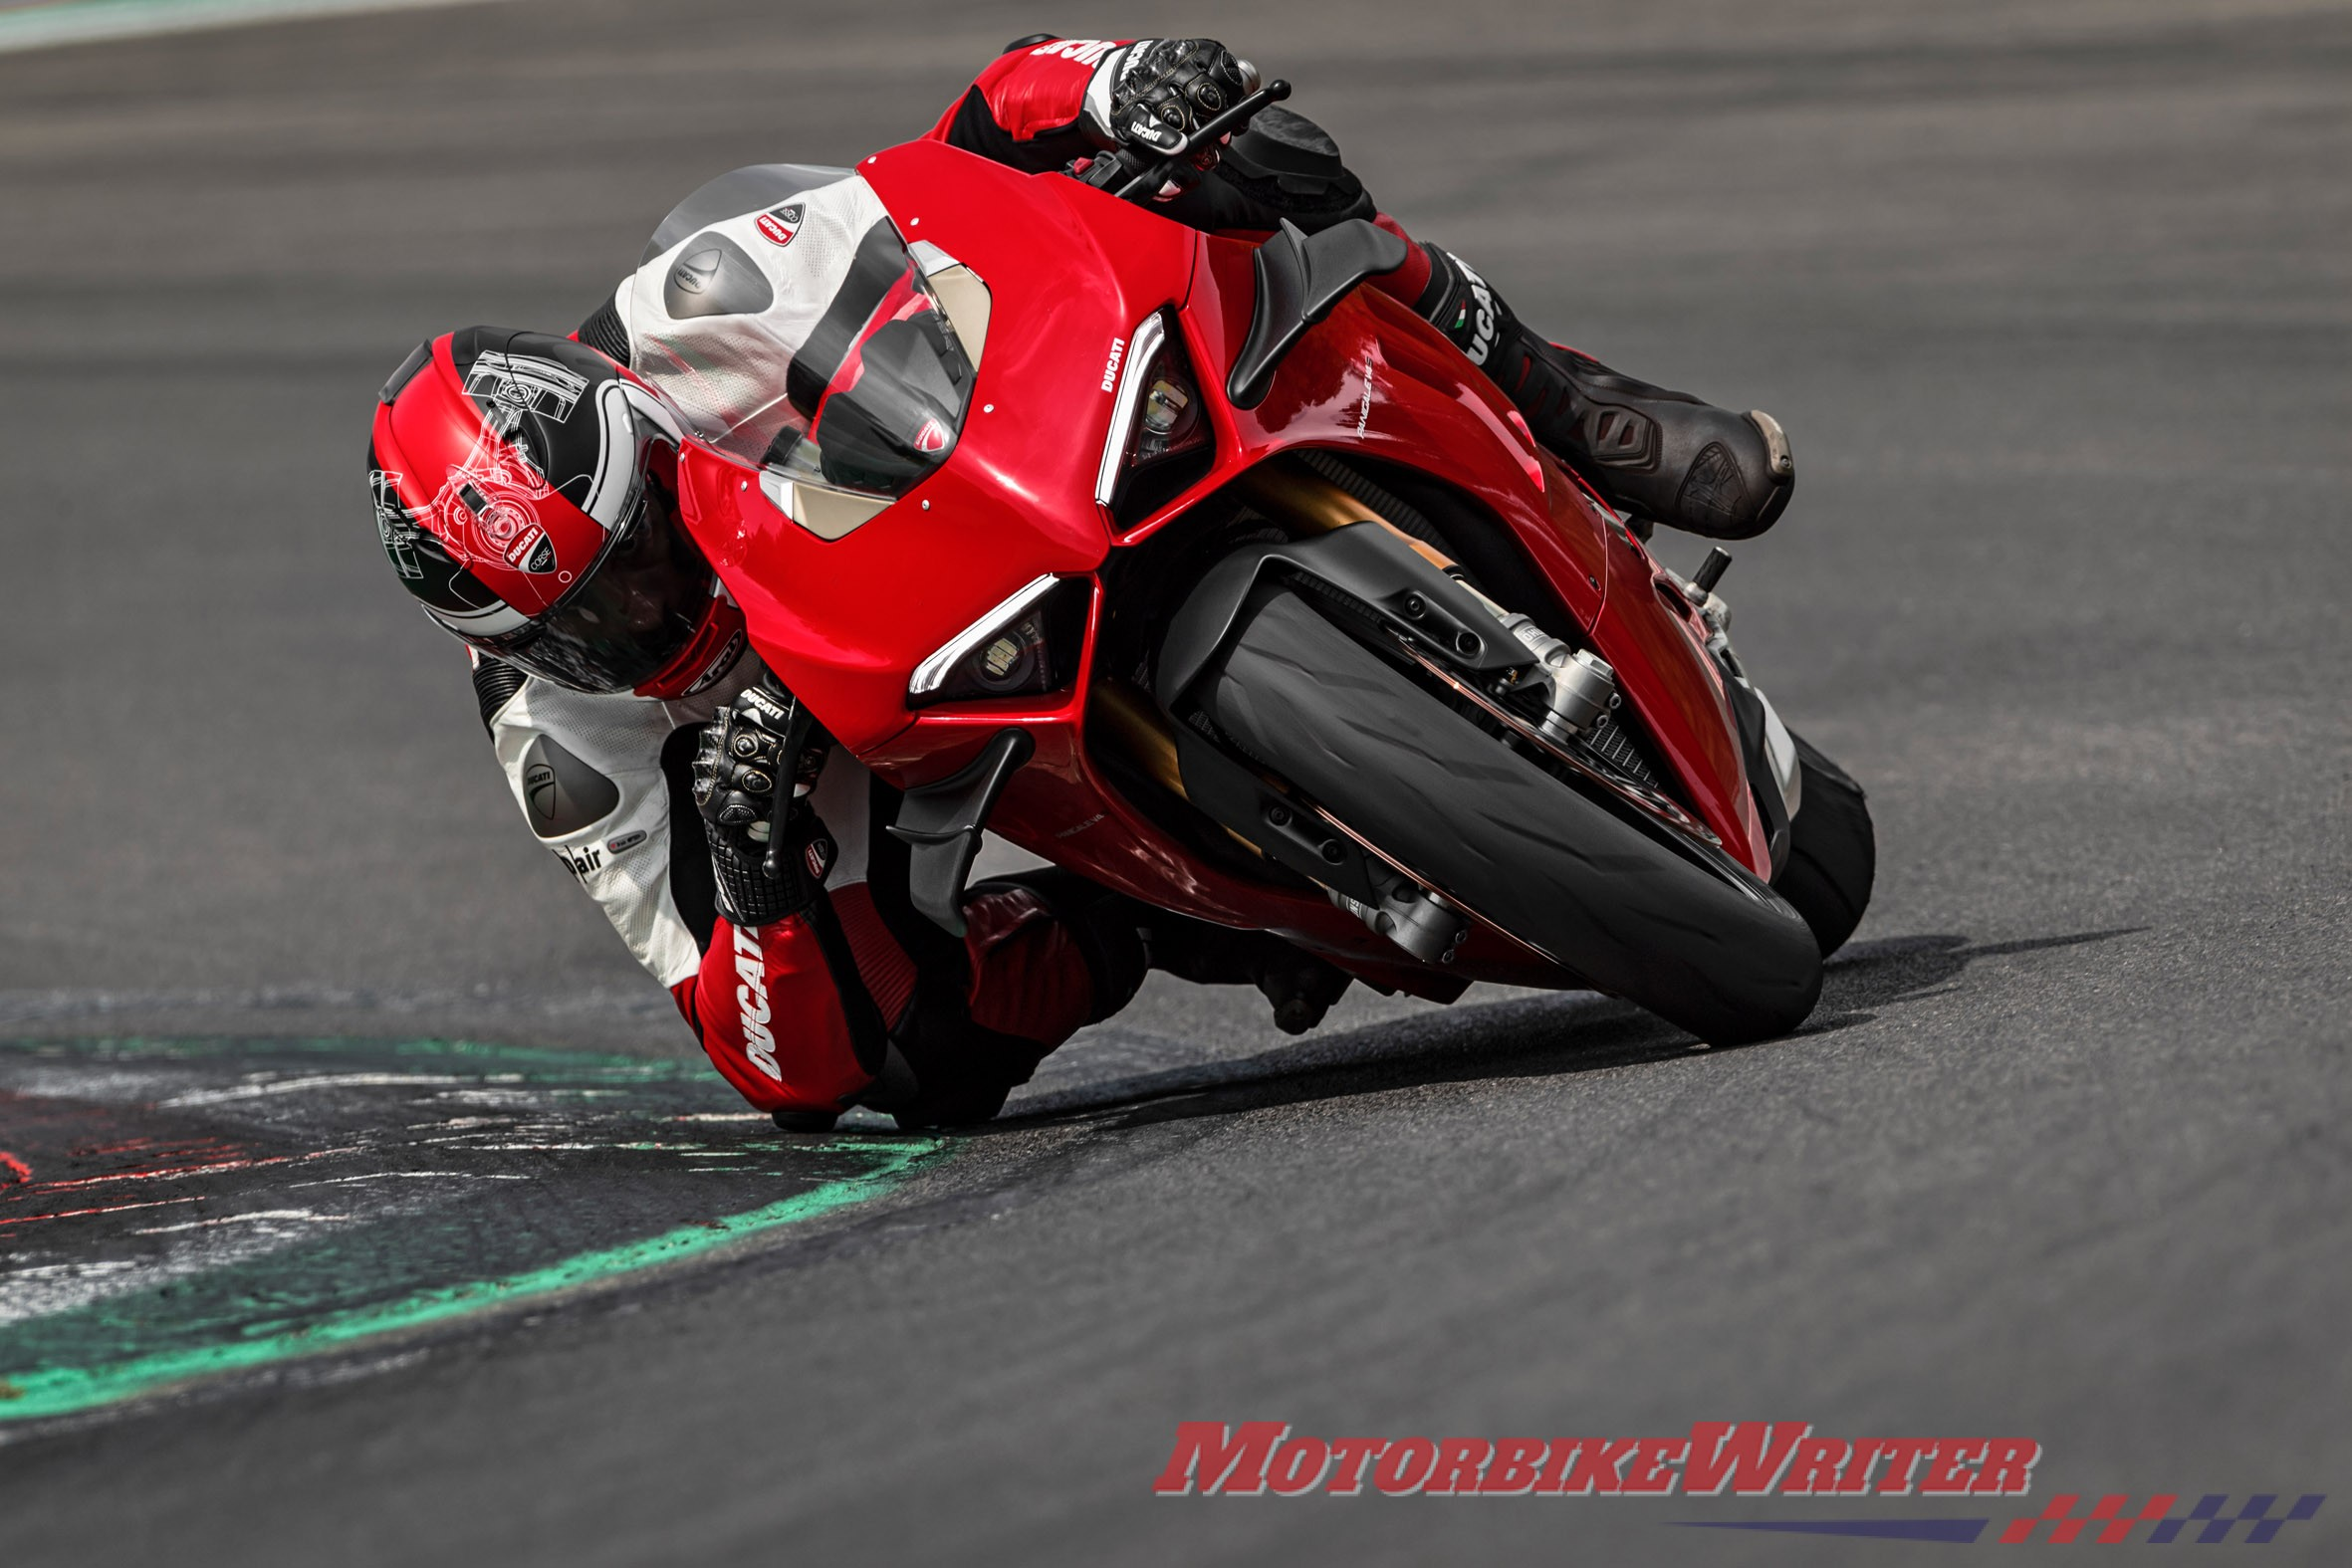 Softer DUCATI PANIGALE V4 s